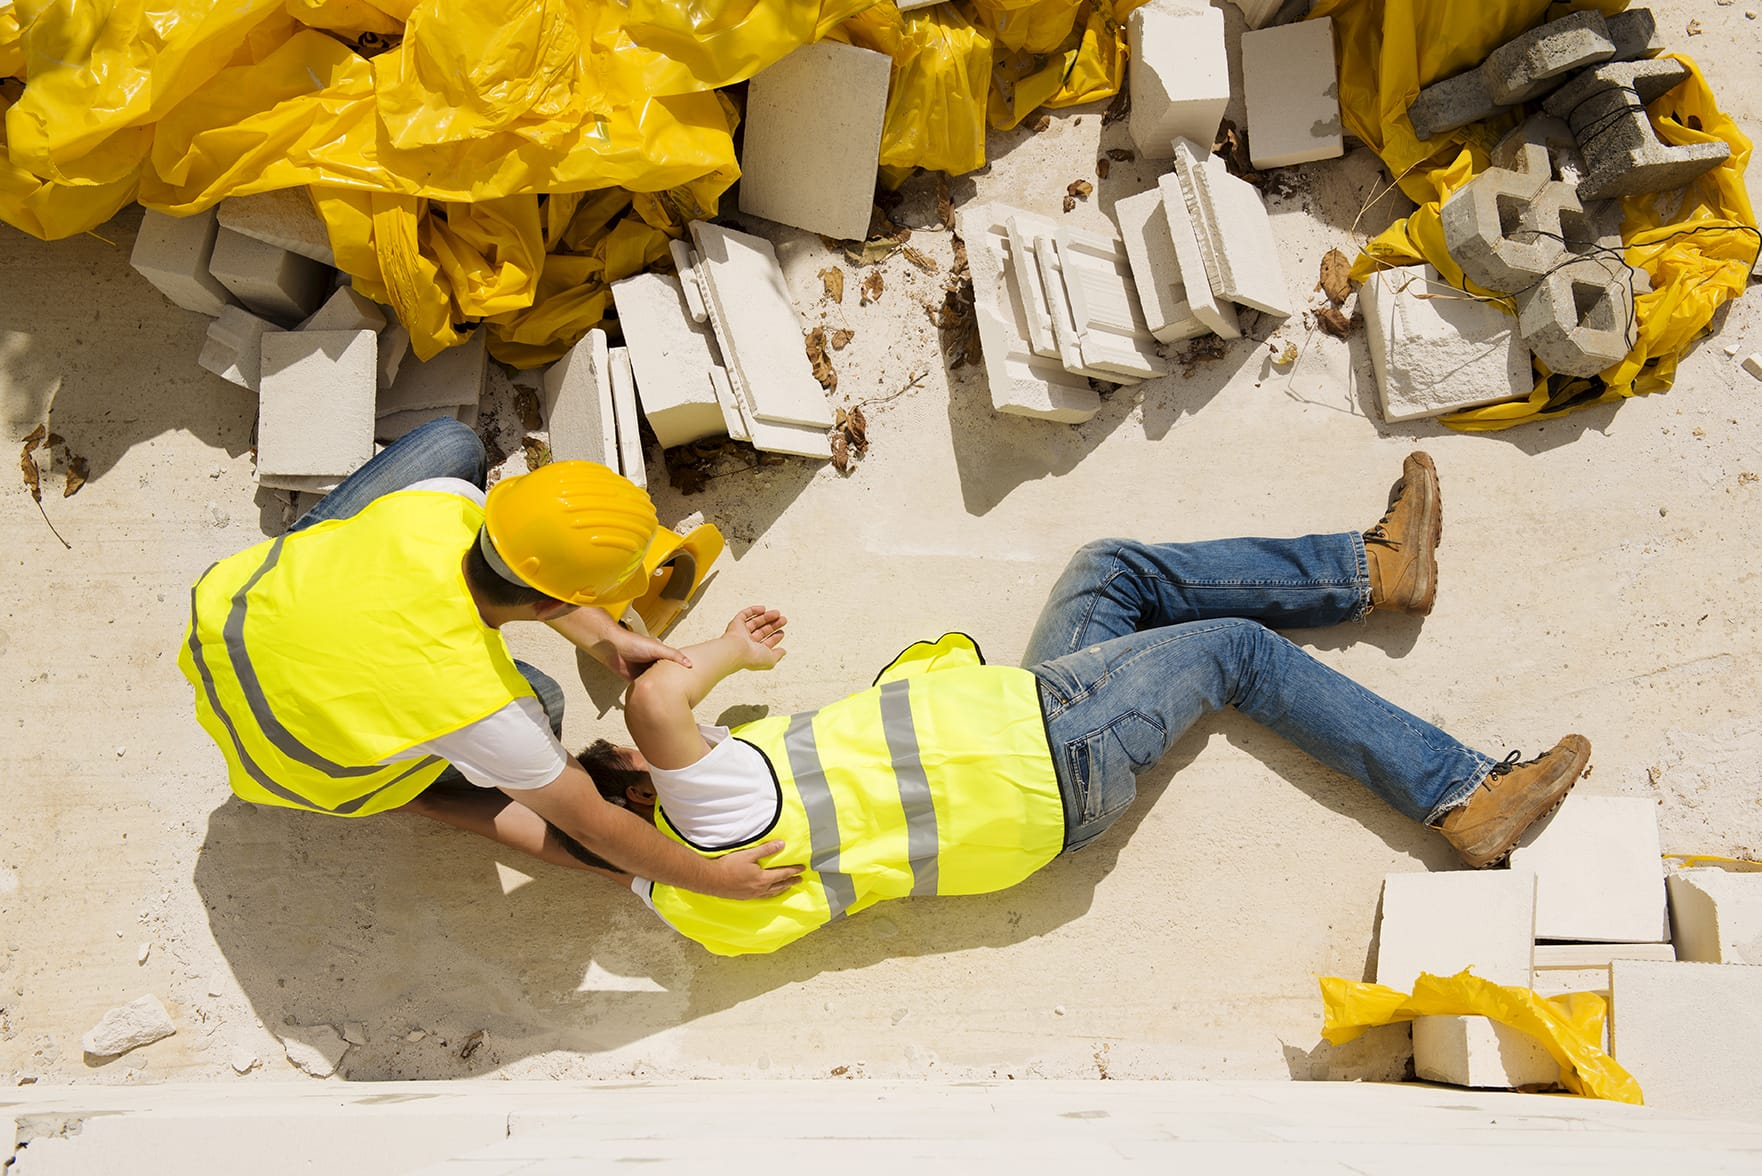 How to Find and Fix Injury Liabilities at Your Workplace